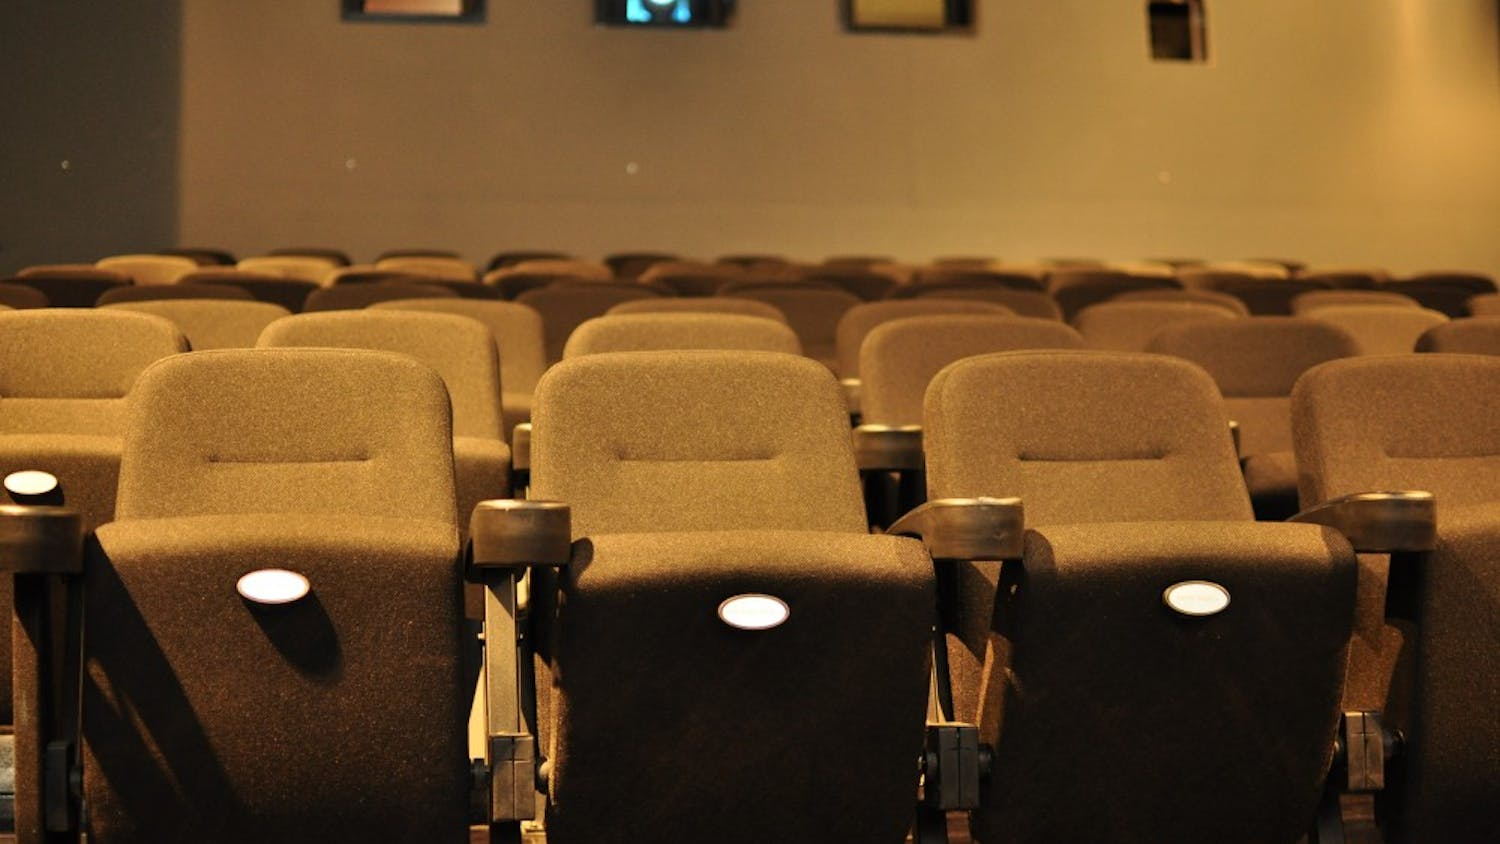 Row of seats at Columbia's own Nickelodeon Theatre